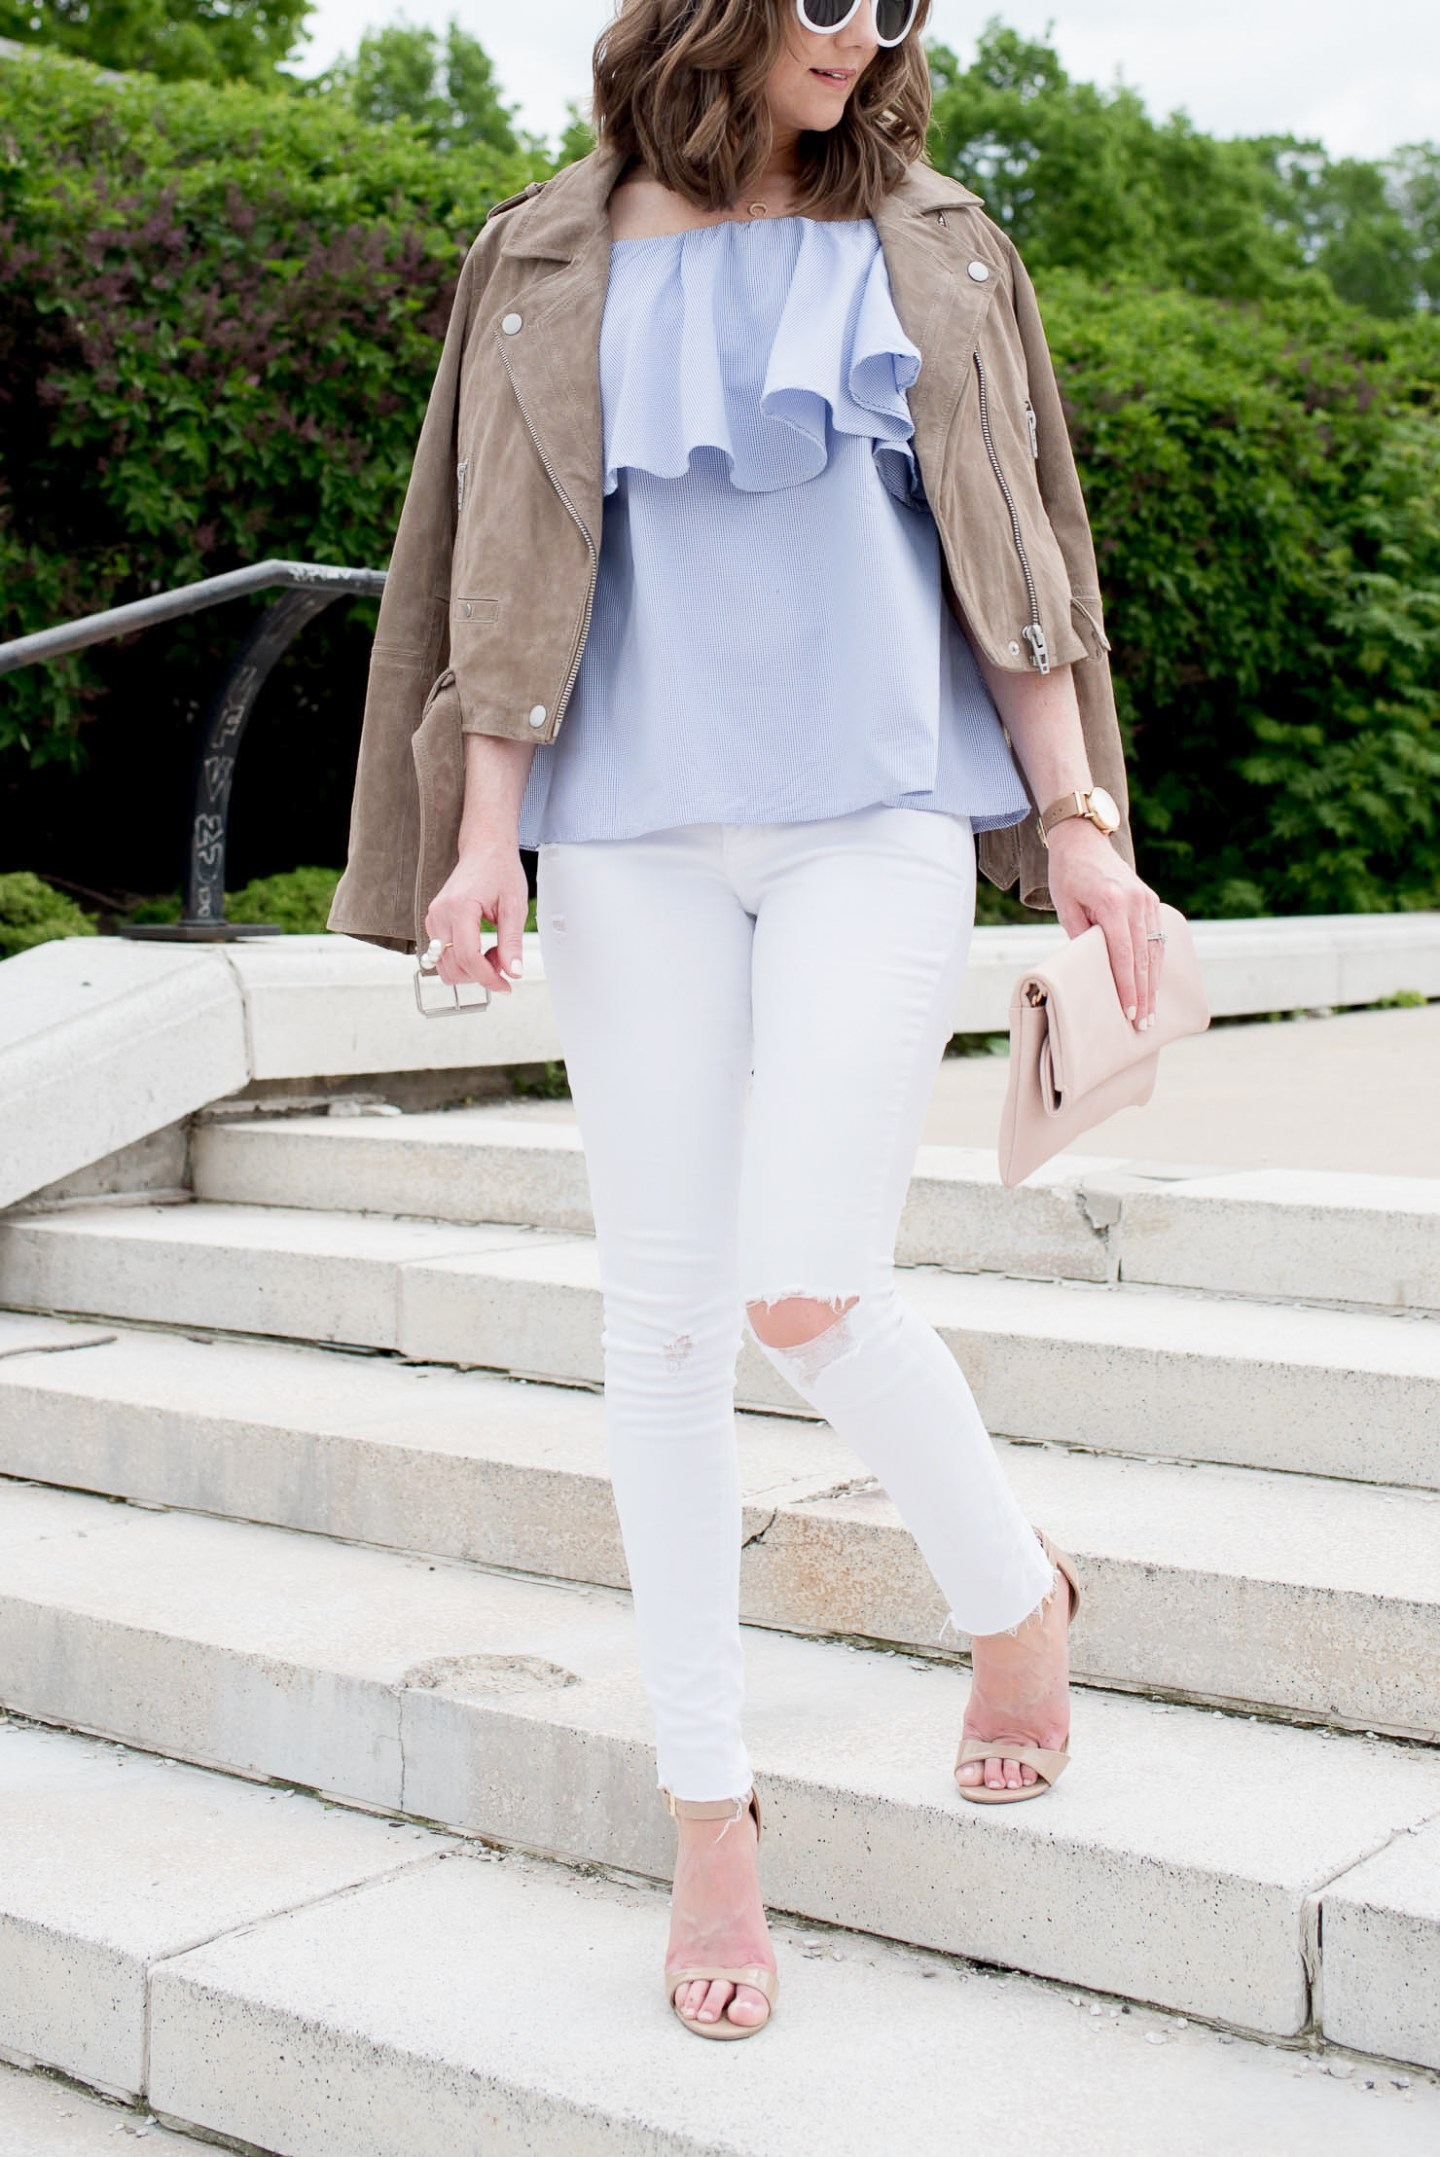 how to wear spring trends when its still cold, layering for spring, off the shoulder ruffle flounce top, blanknyc suede jacket, a white denim outfit